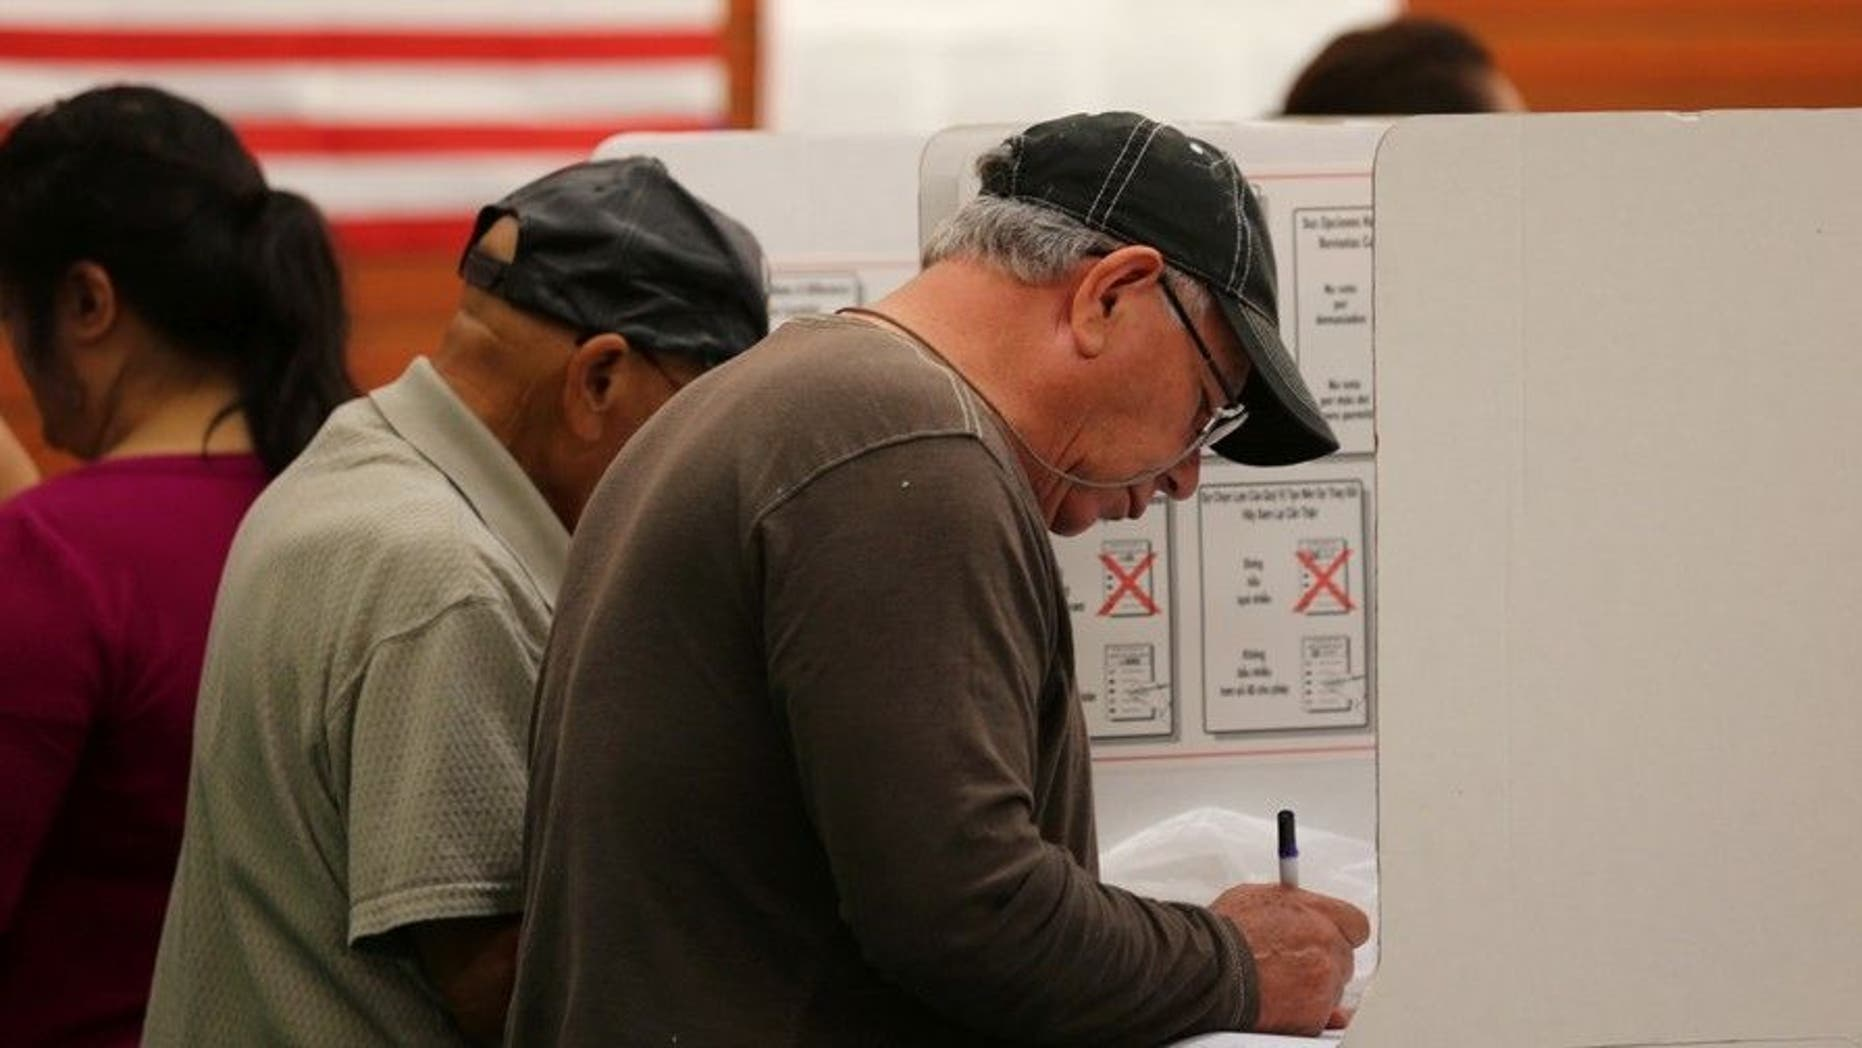 California voters are seen casting ballots in the November 2016 election. California is one of the states where local jurisdictions use 'ranked-choice voting,' something Maine is struggling to implement statewide.  (Reuters)